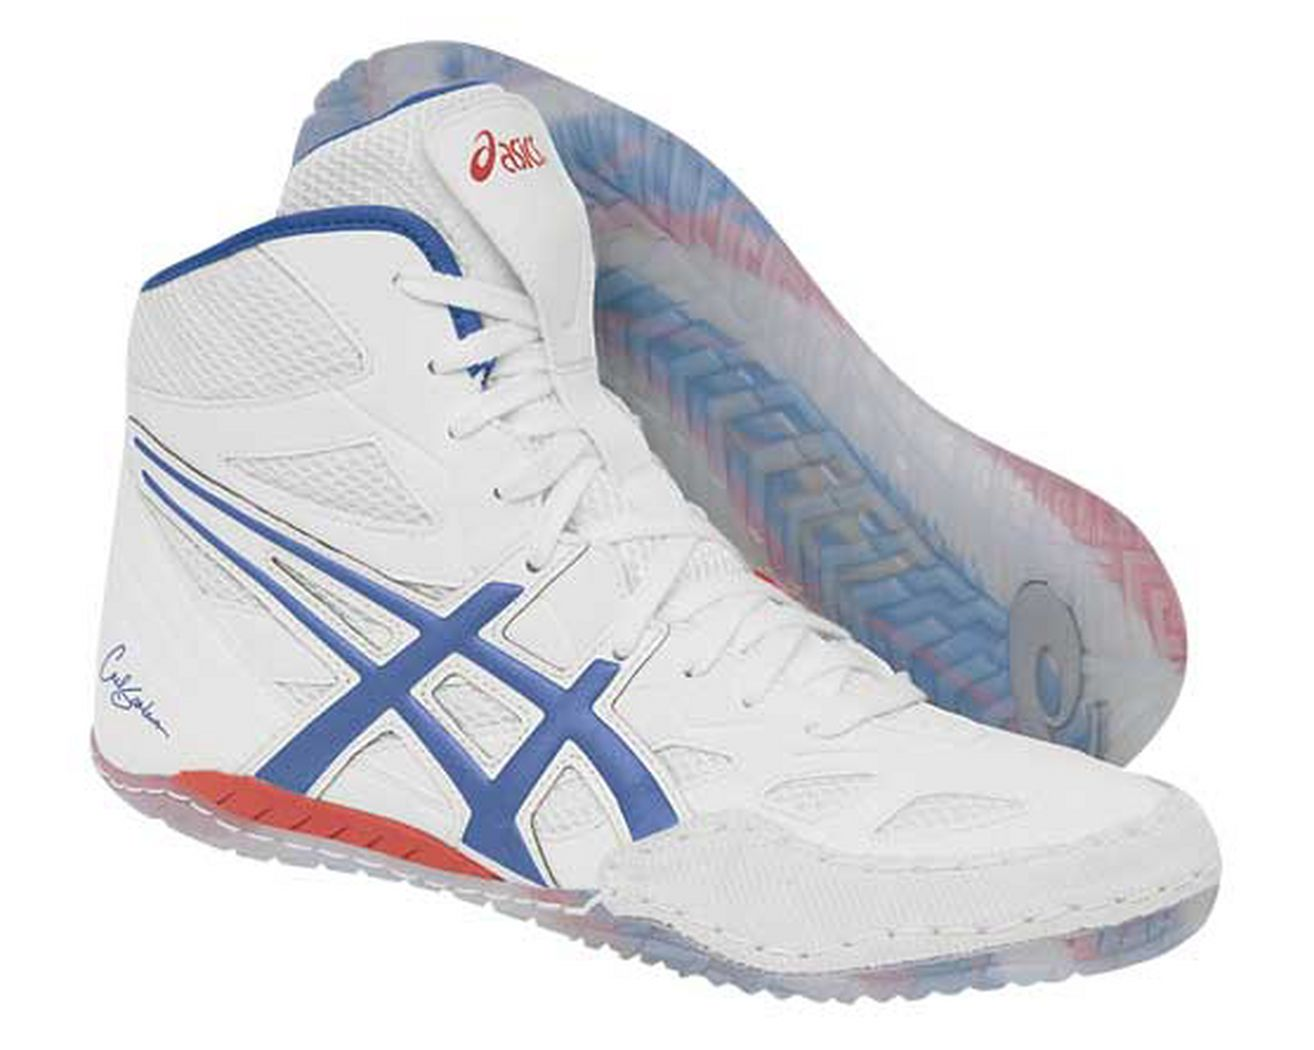 Mens ASICS Cael V2.0 Wrestling Shoe at Road Runner Sports